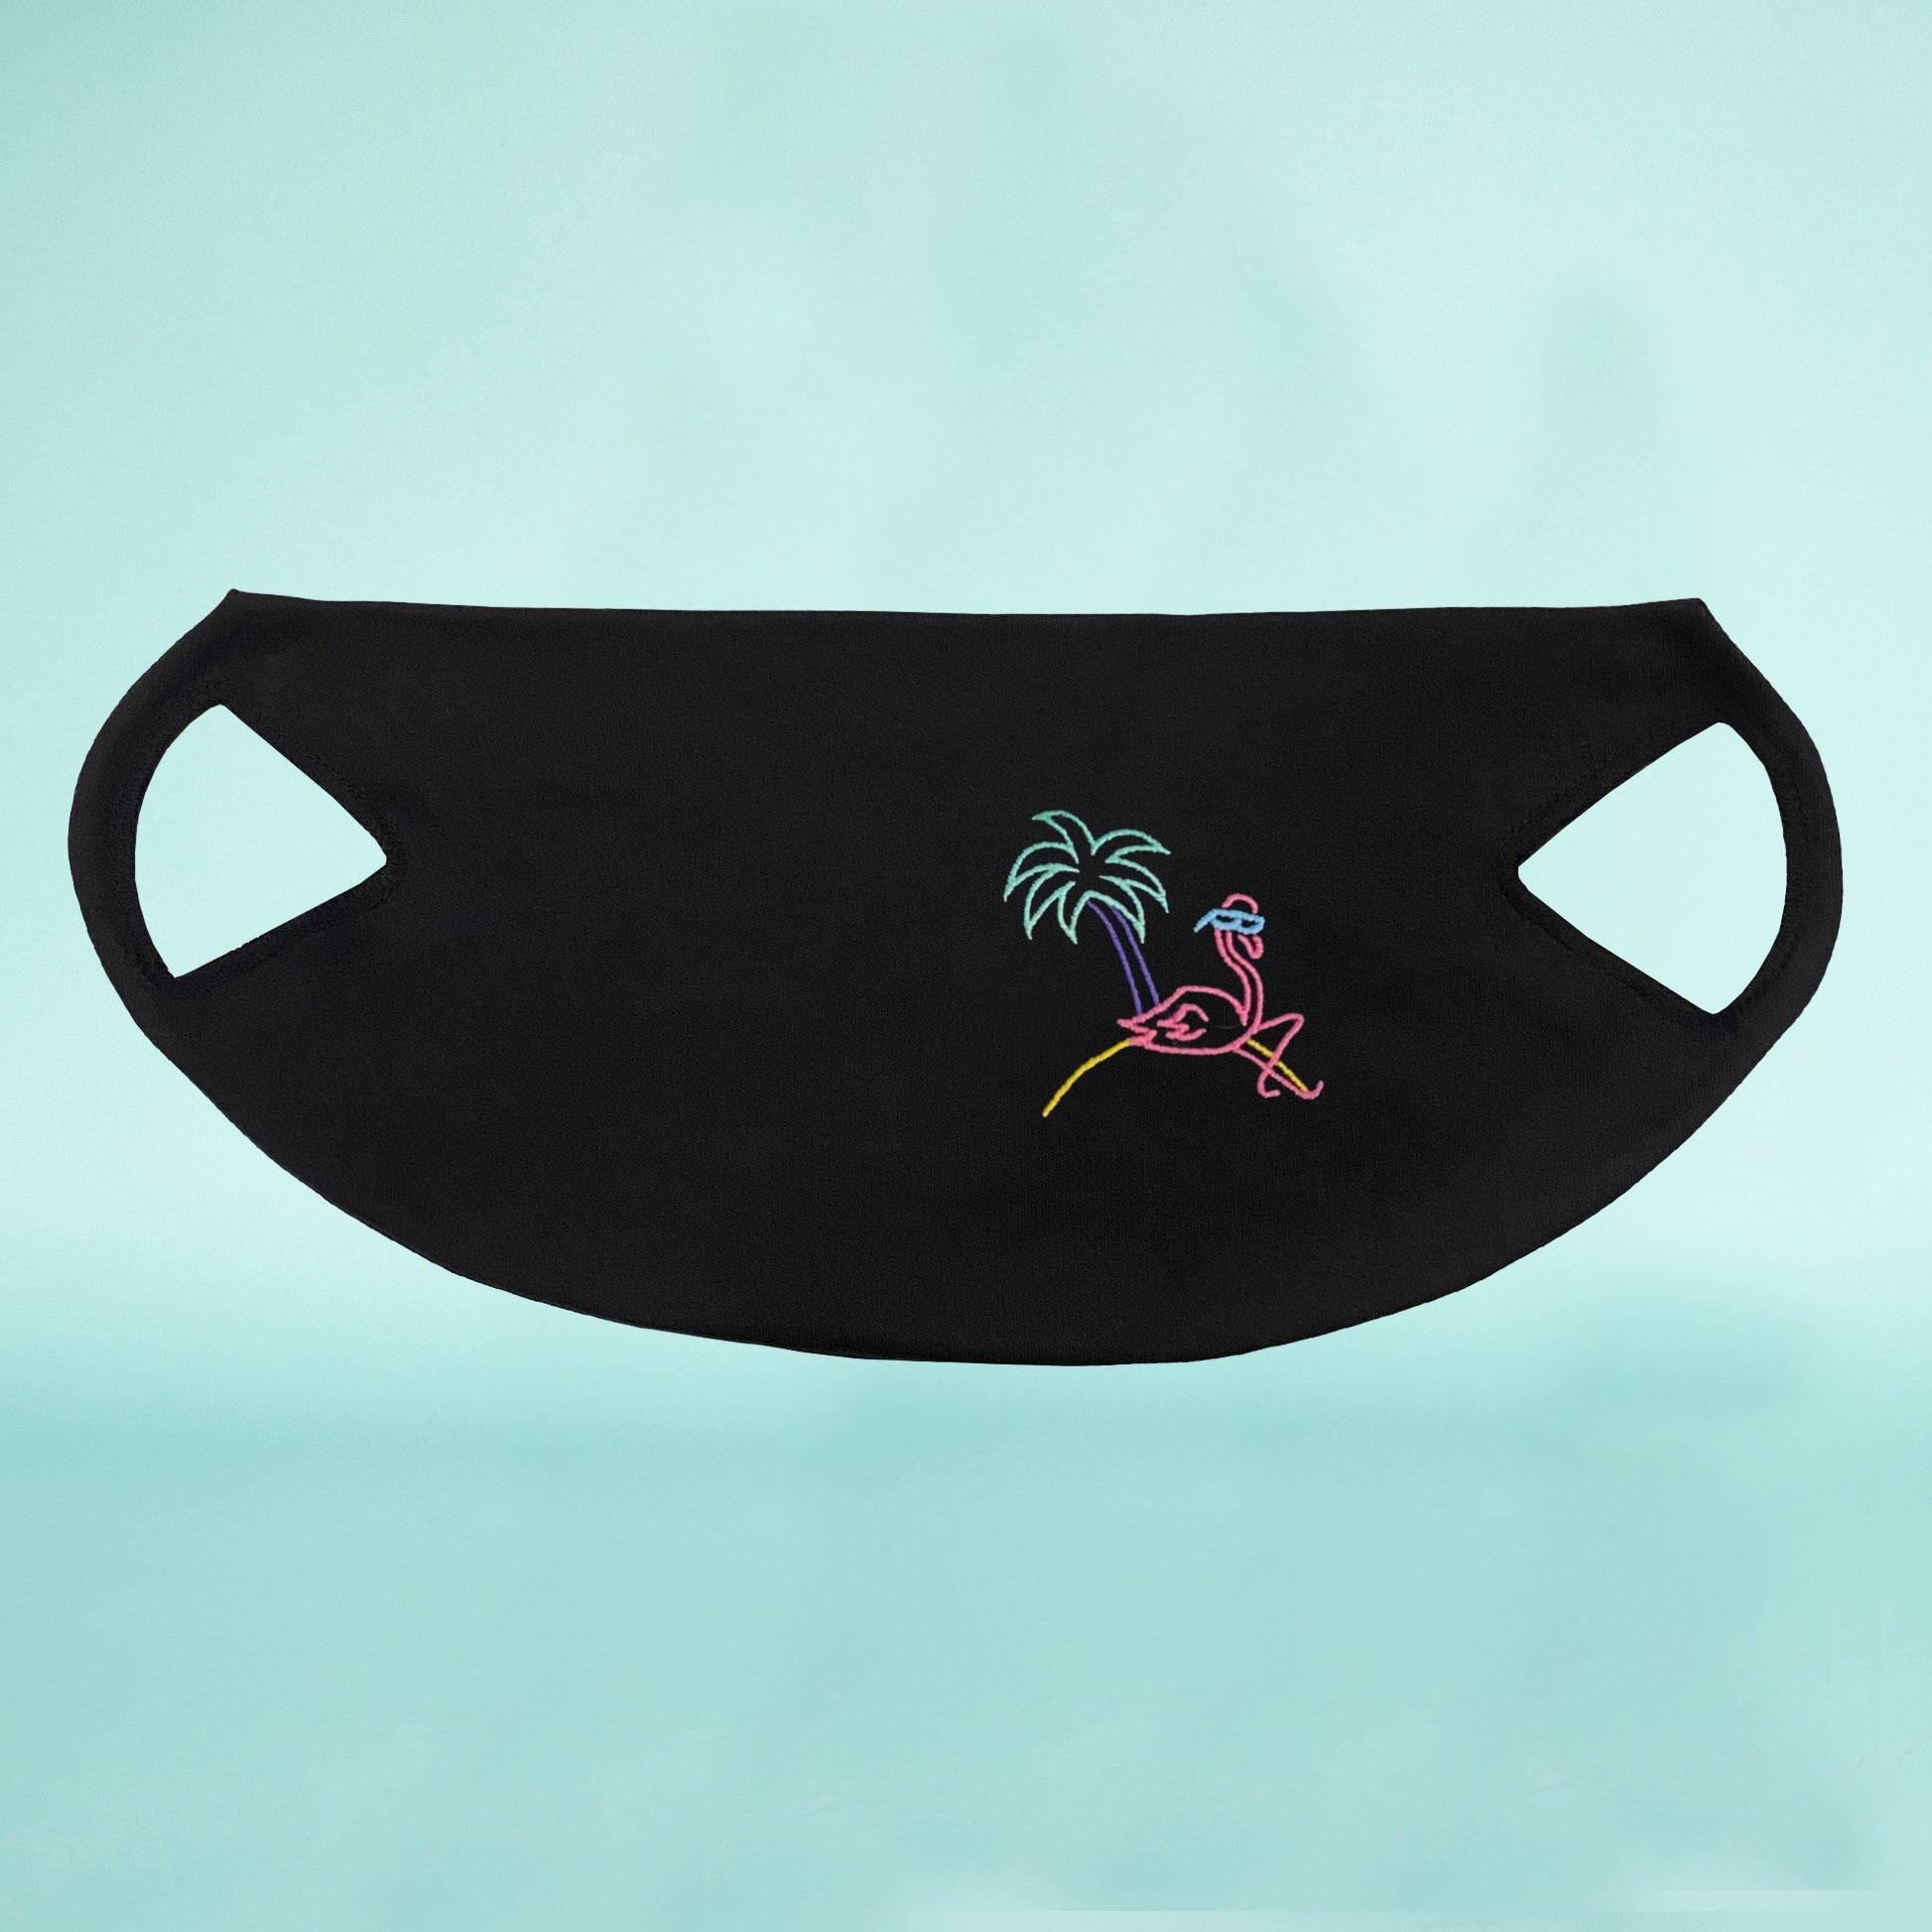 🦩 Retro Flamingo Black washable face mask - Unisex | Glow in the dark